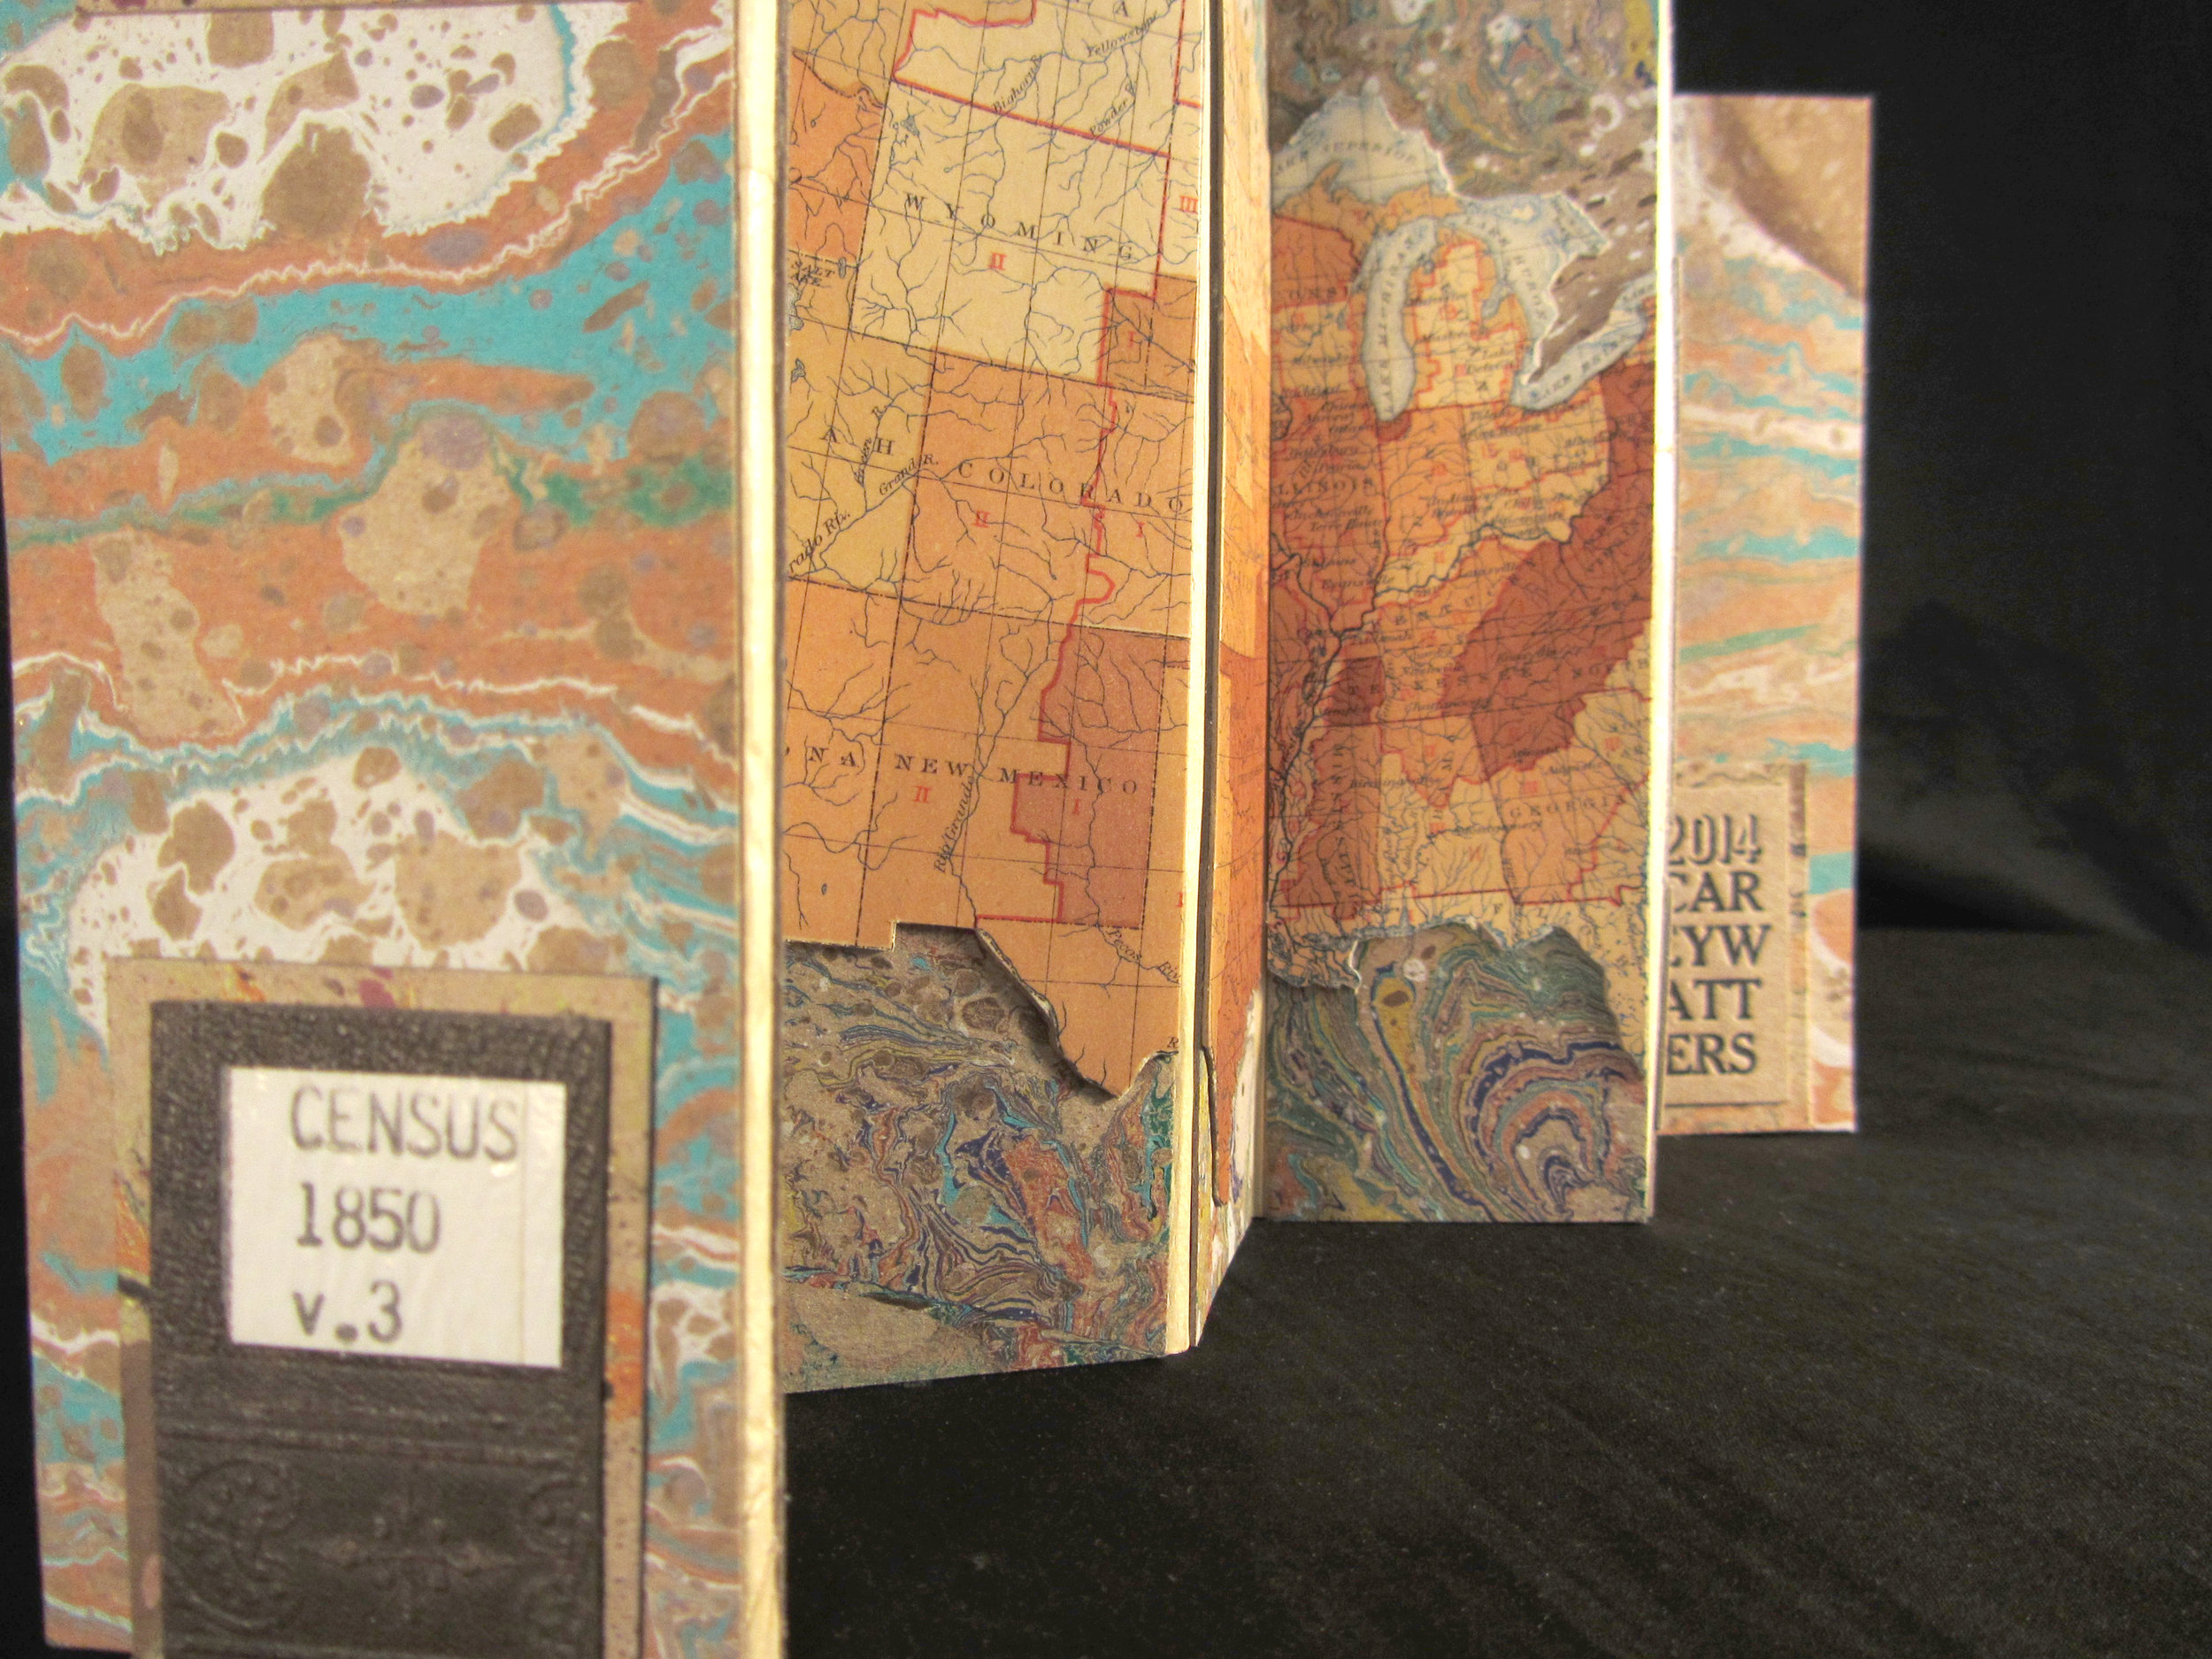 """Carey Watters, """"1850 Census,"""" Found Paper, Letterpress, Marbled Paper, 2014, Milwaukee, WI"""